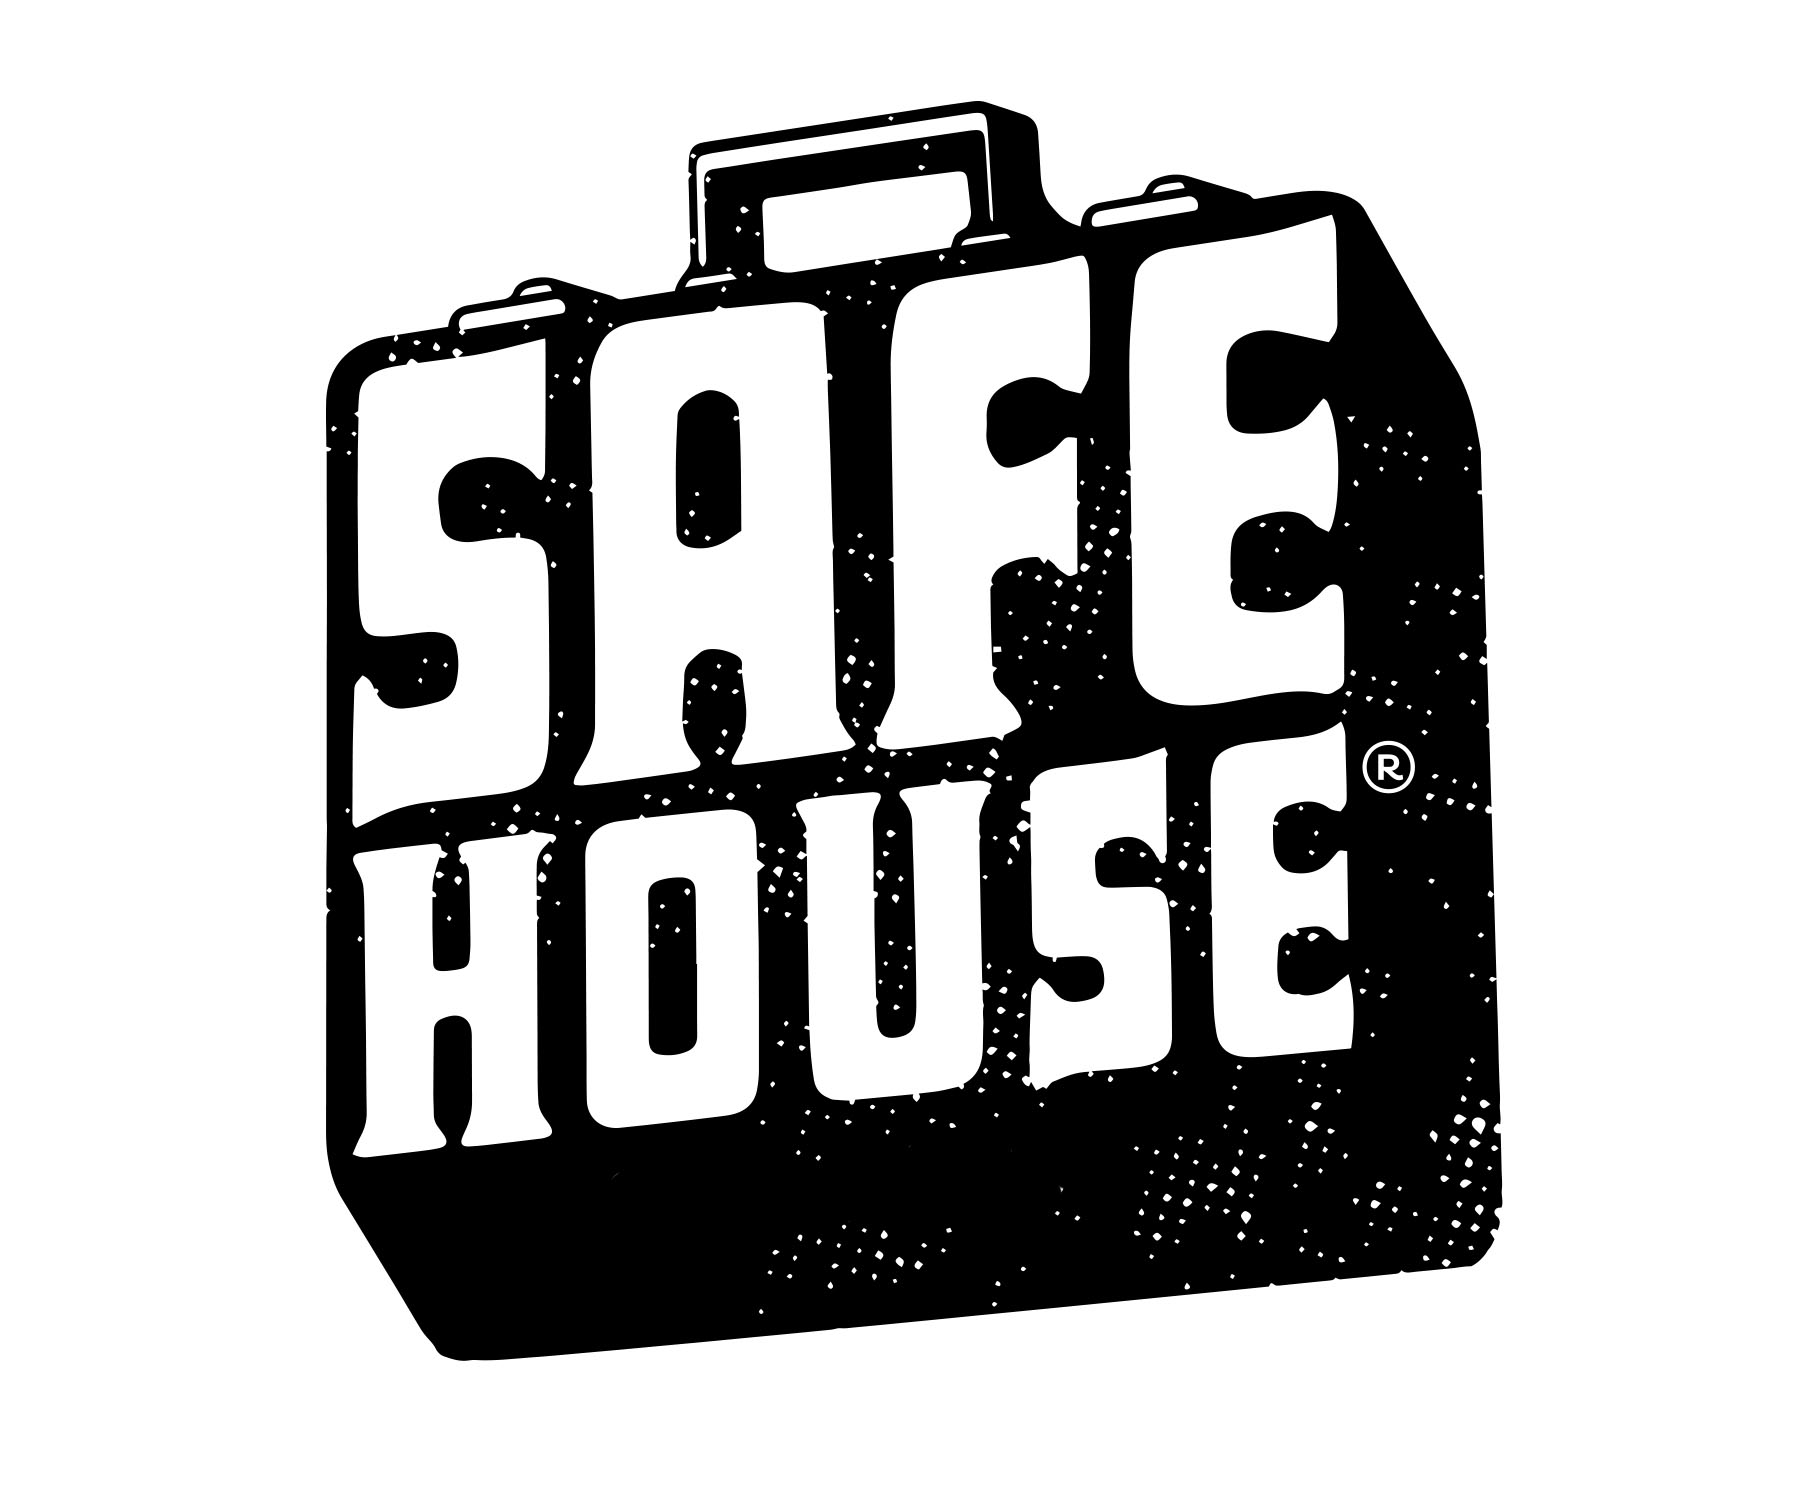 SafeHouse Logos, High Resolution